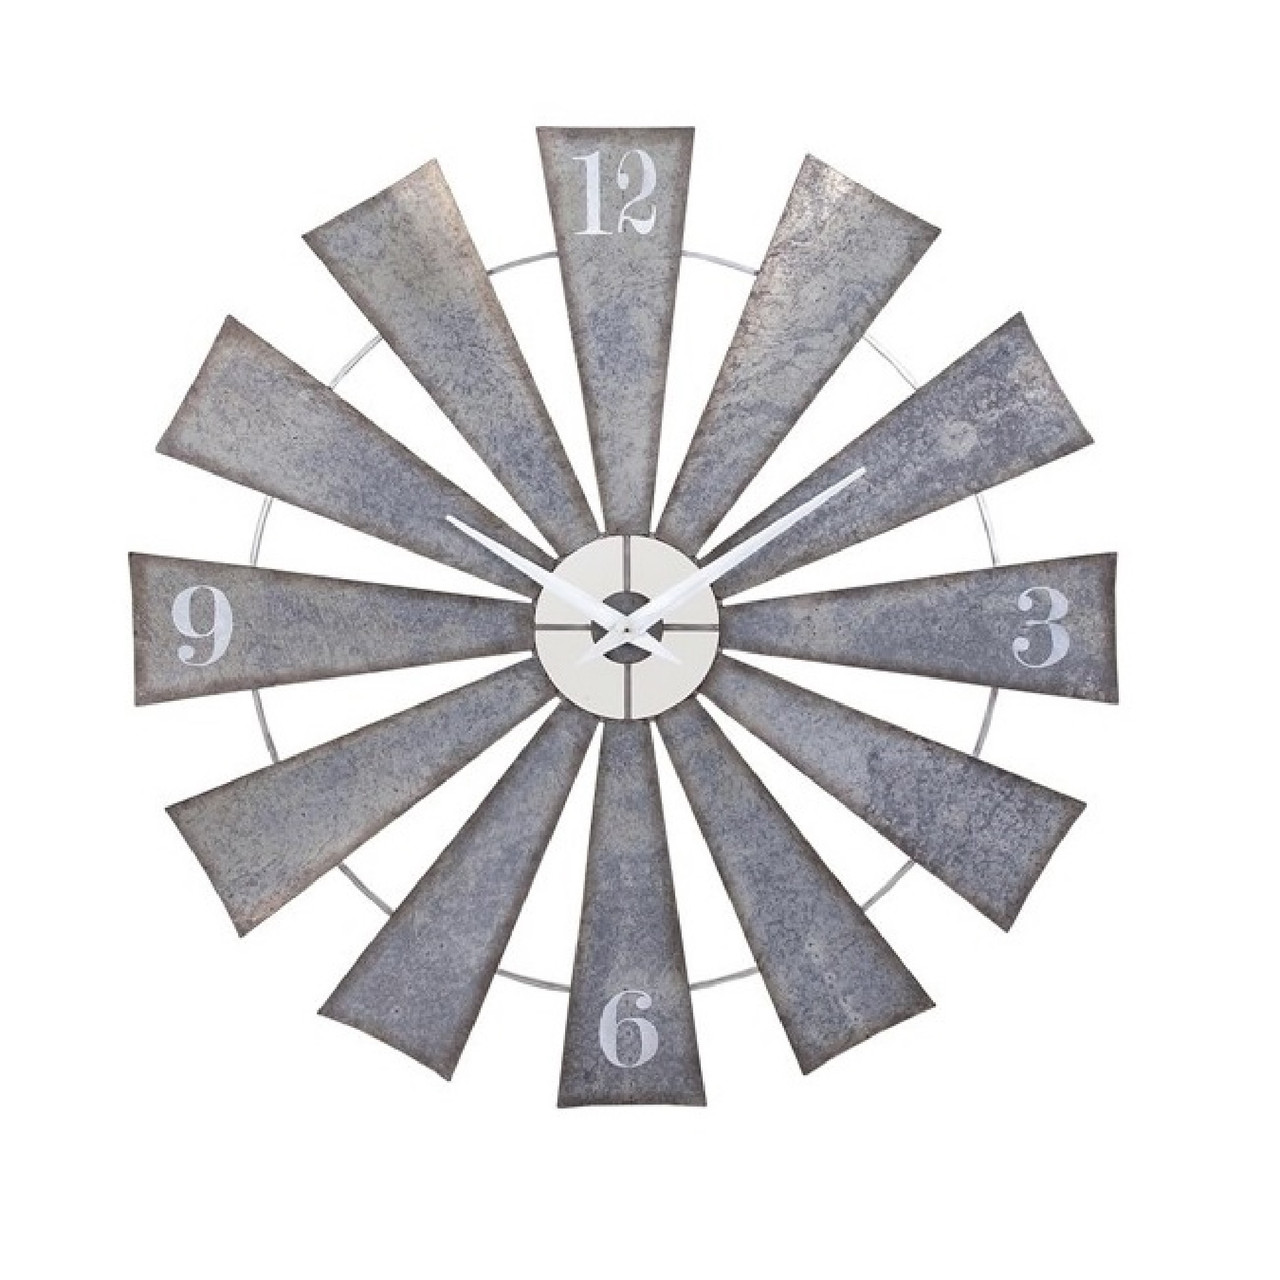 48 steel and pewter gray weathered windmill wall clock 48 steel and pewter gray weathered windmill wall clock 32599652 amipublicfo Images